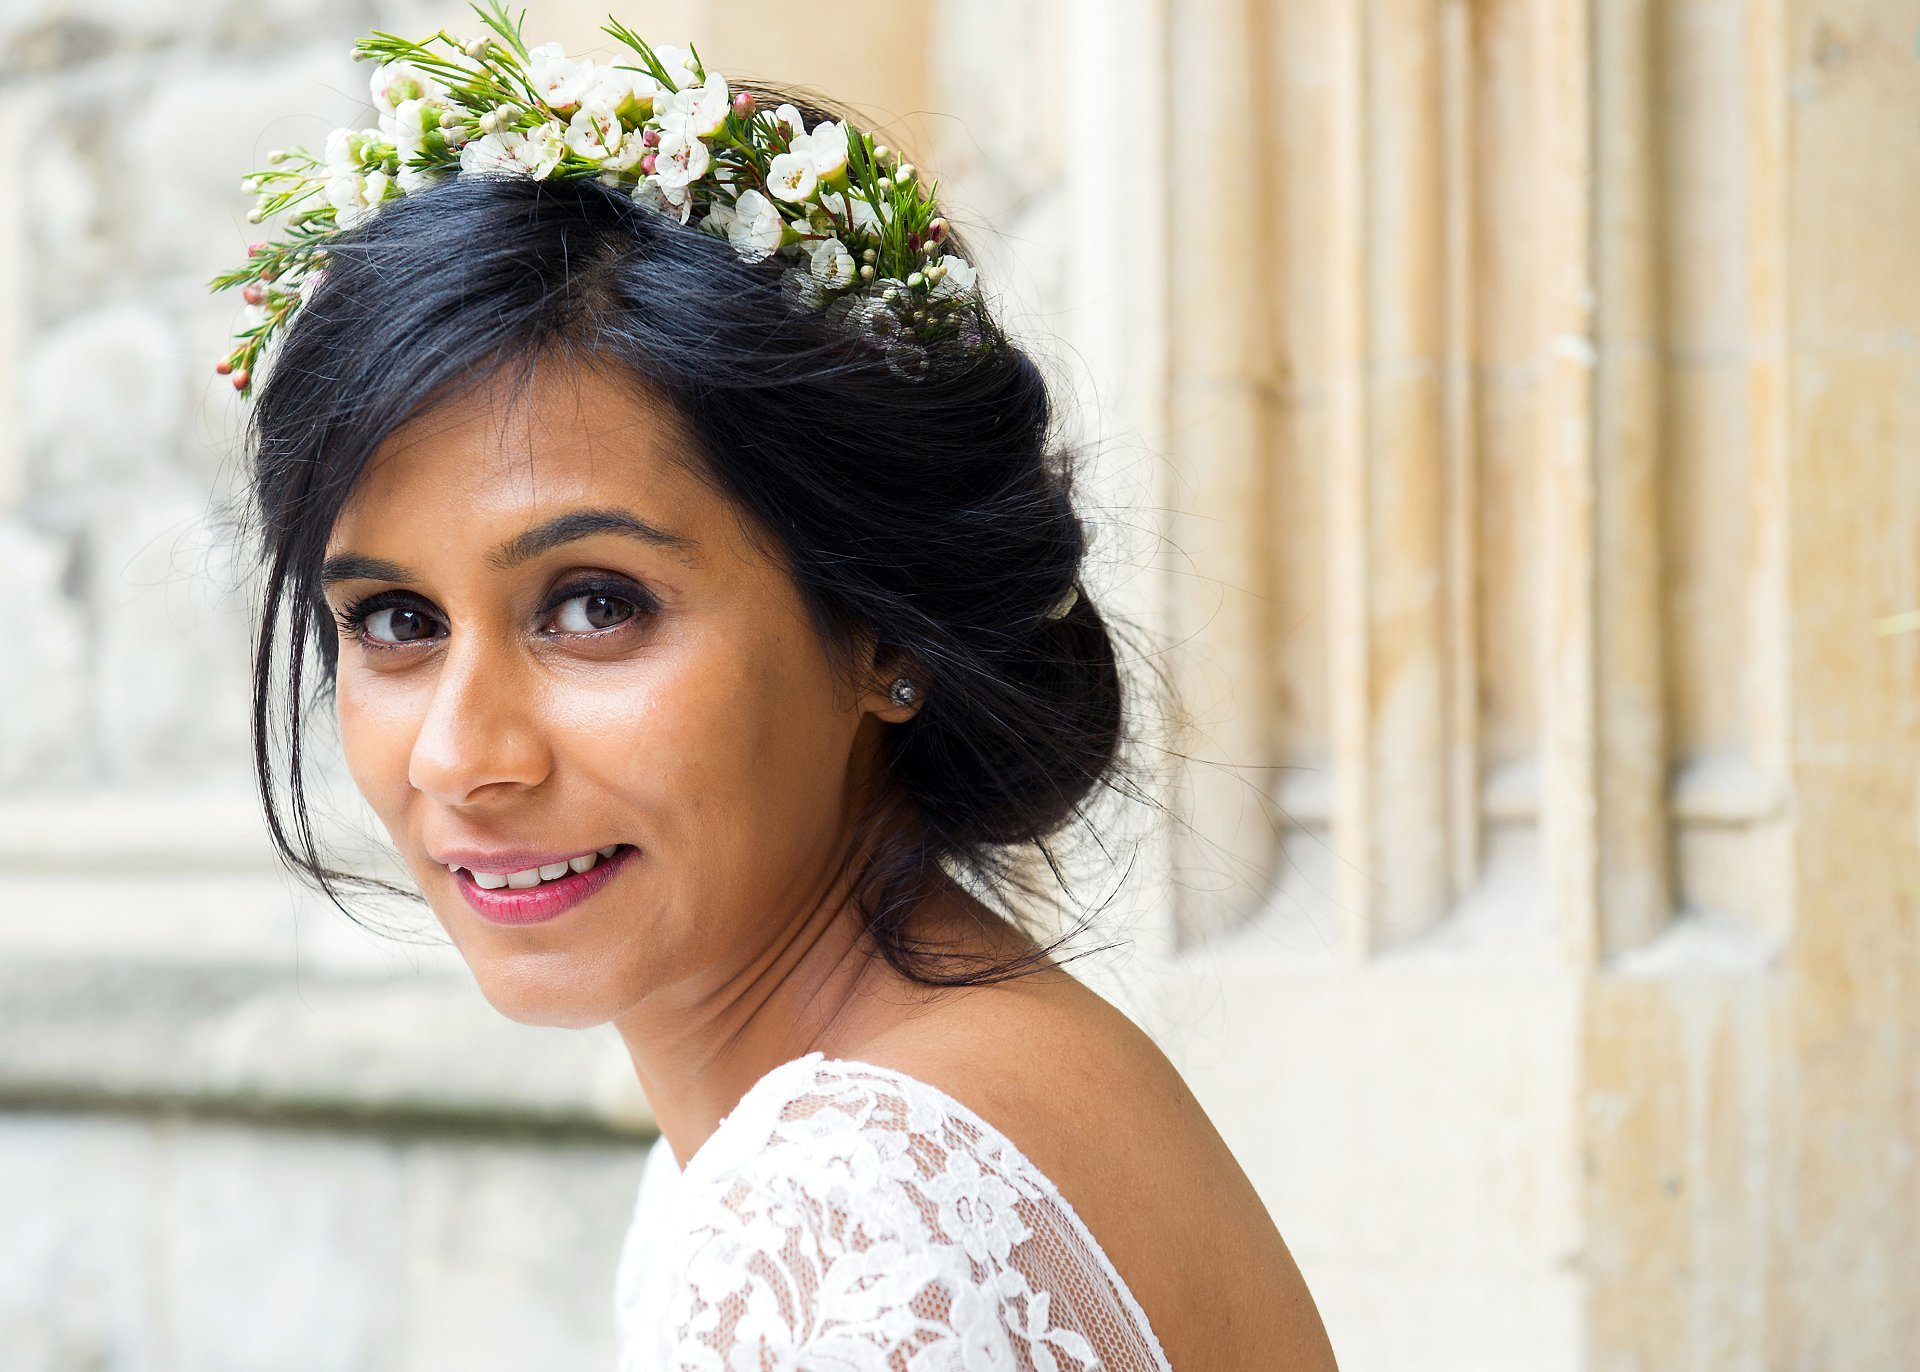 london wedding photographer emma duggan showing a bride wearing a floral headpiece